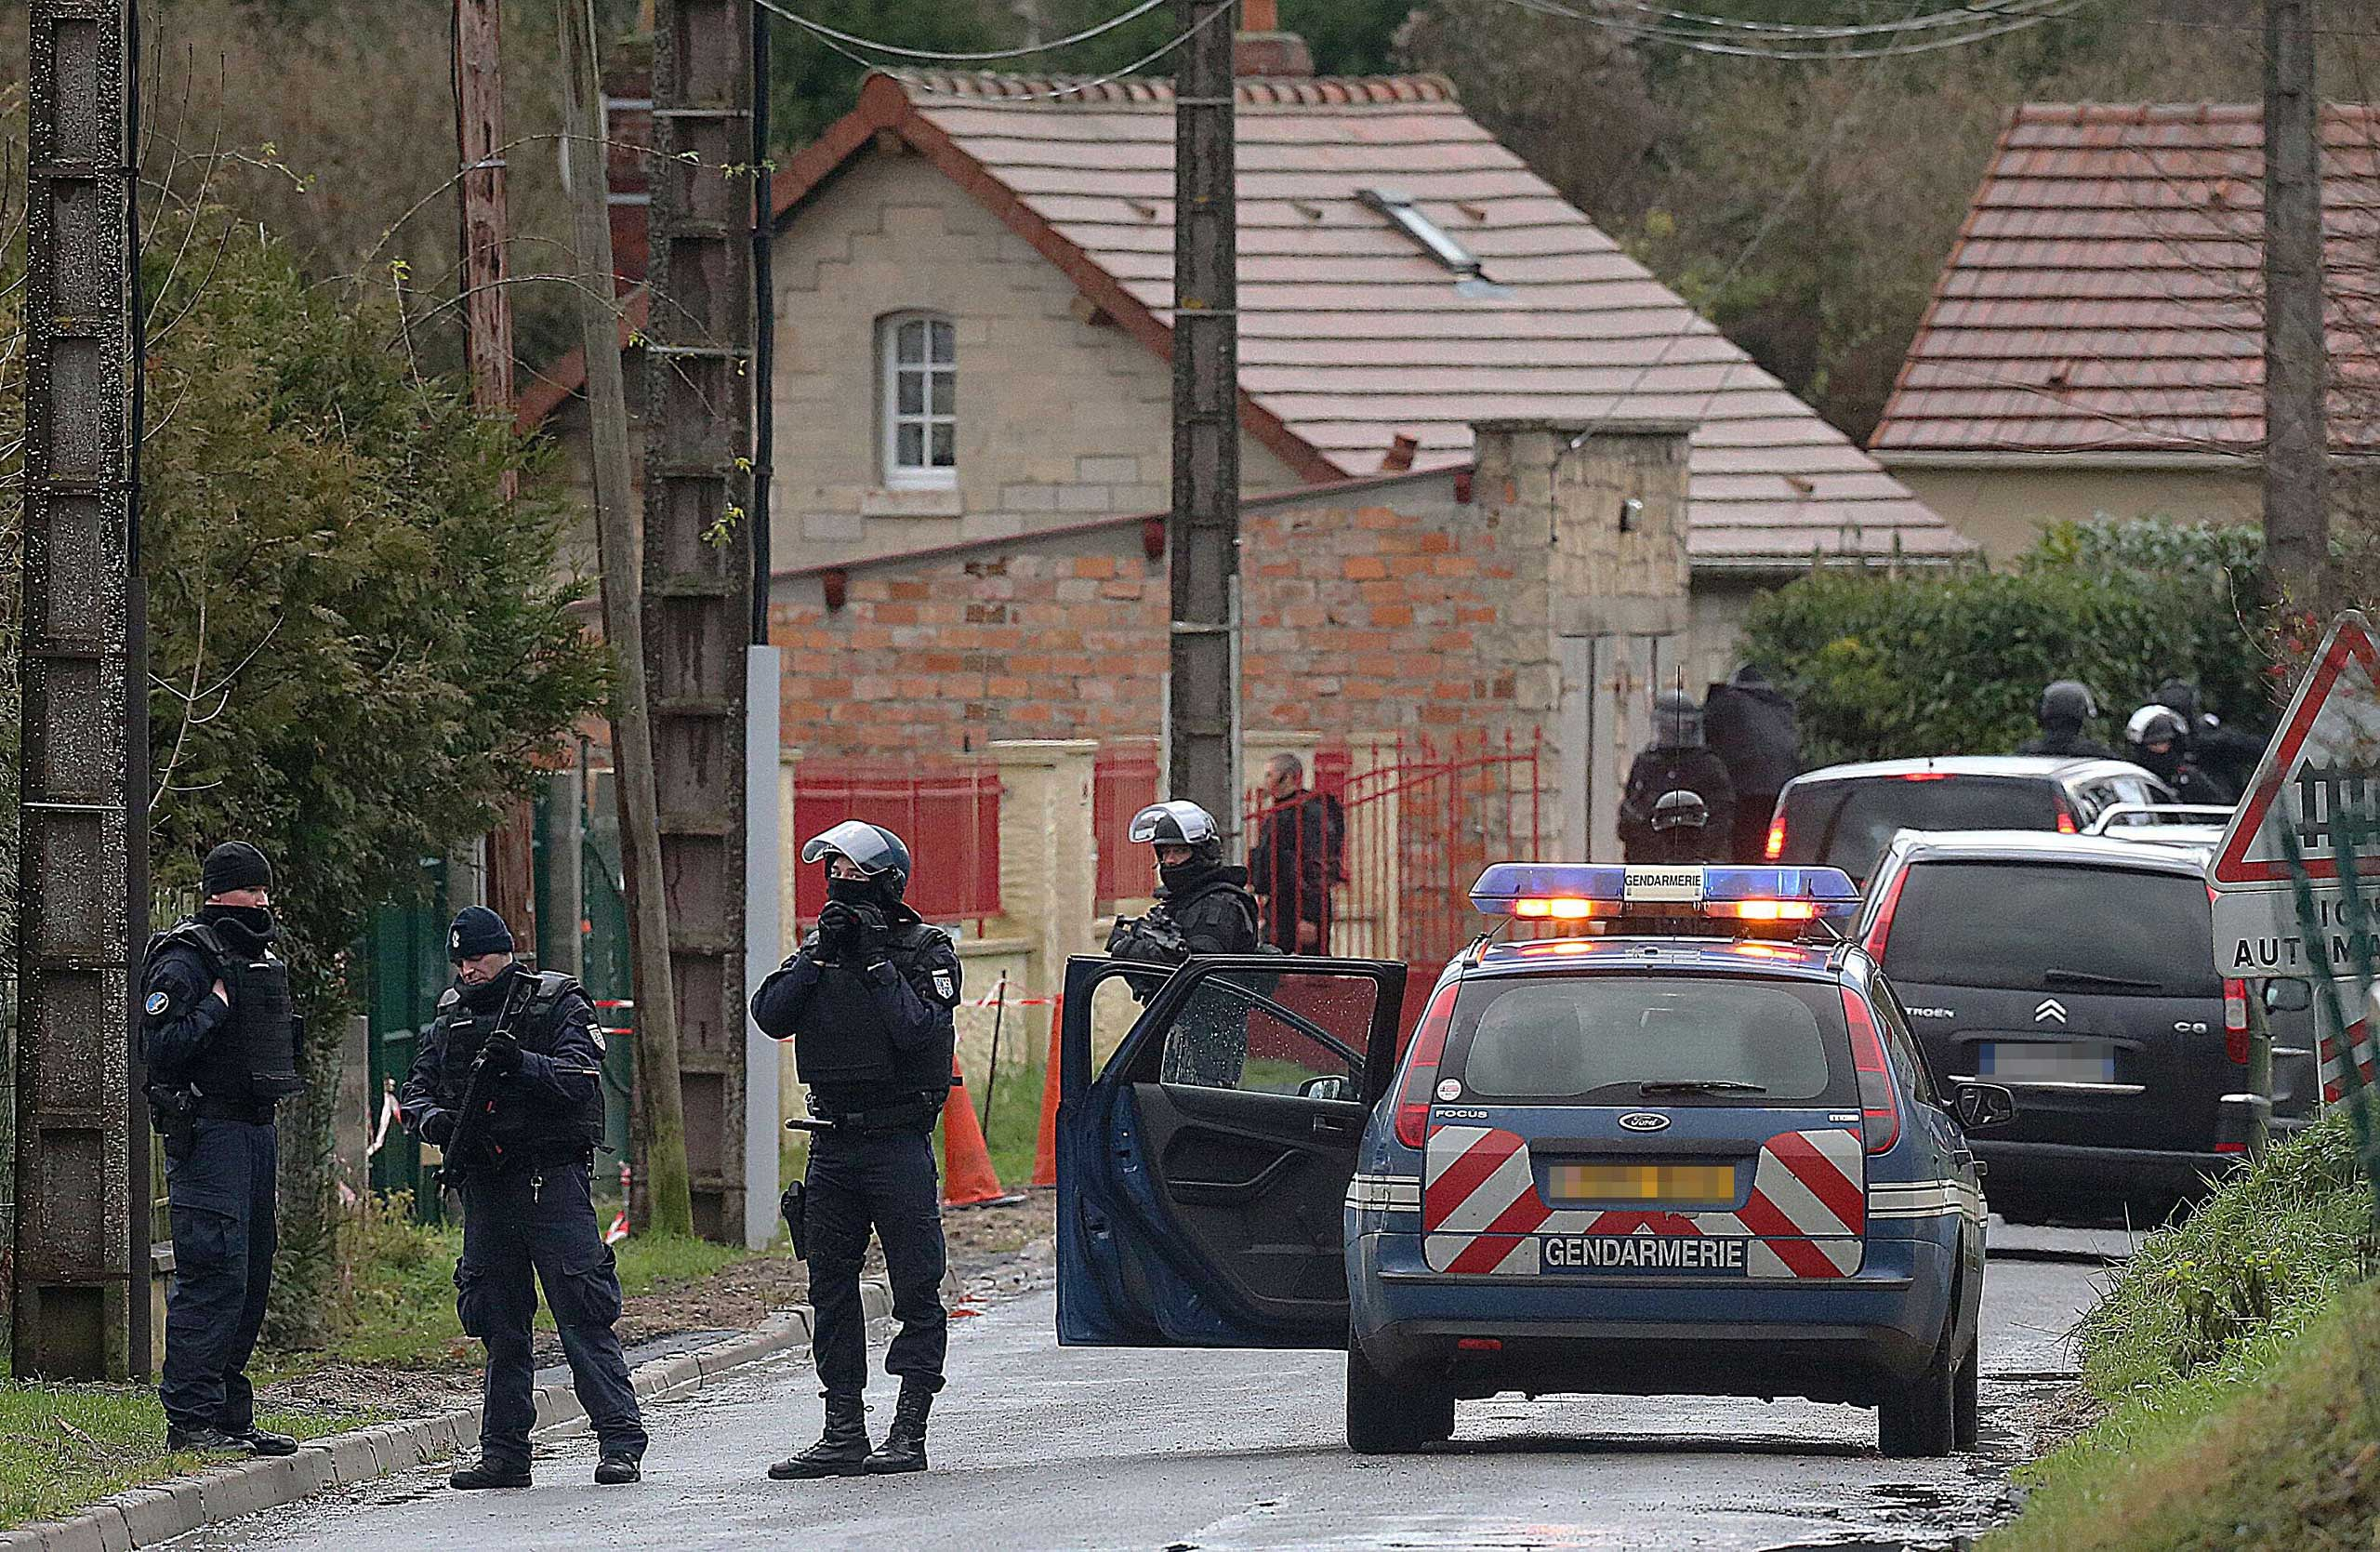 Members of GIPN and of RAID, French police special forces, are pictured in Corcy, near Villers-Cotterets, north-east of Paris, on Jan. 8, 2015, where the two armed suspects from the attack on French satirical weekly newspaper Charlie Hebdo were spotted in a gray Clio.